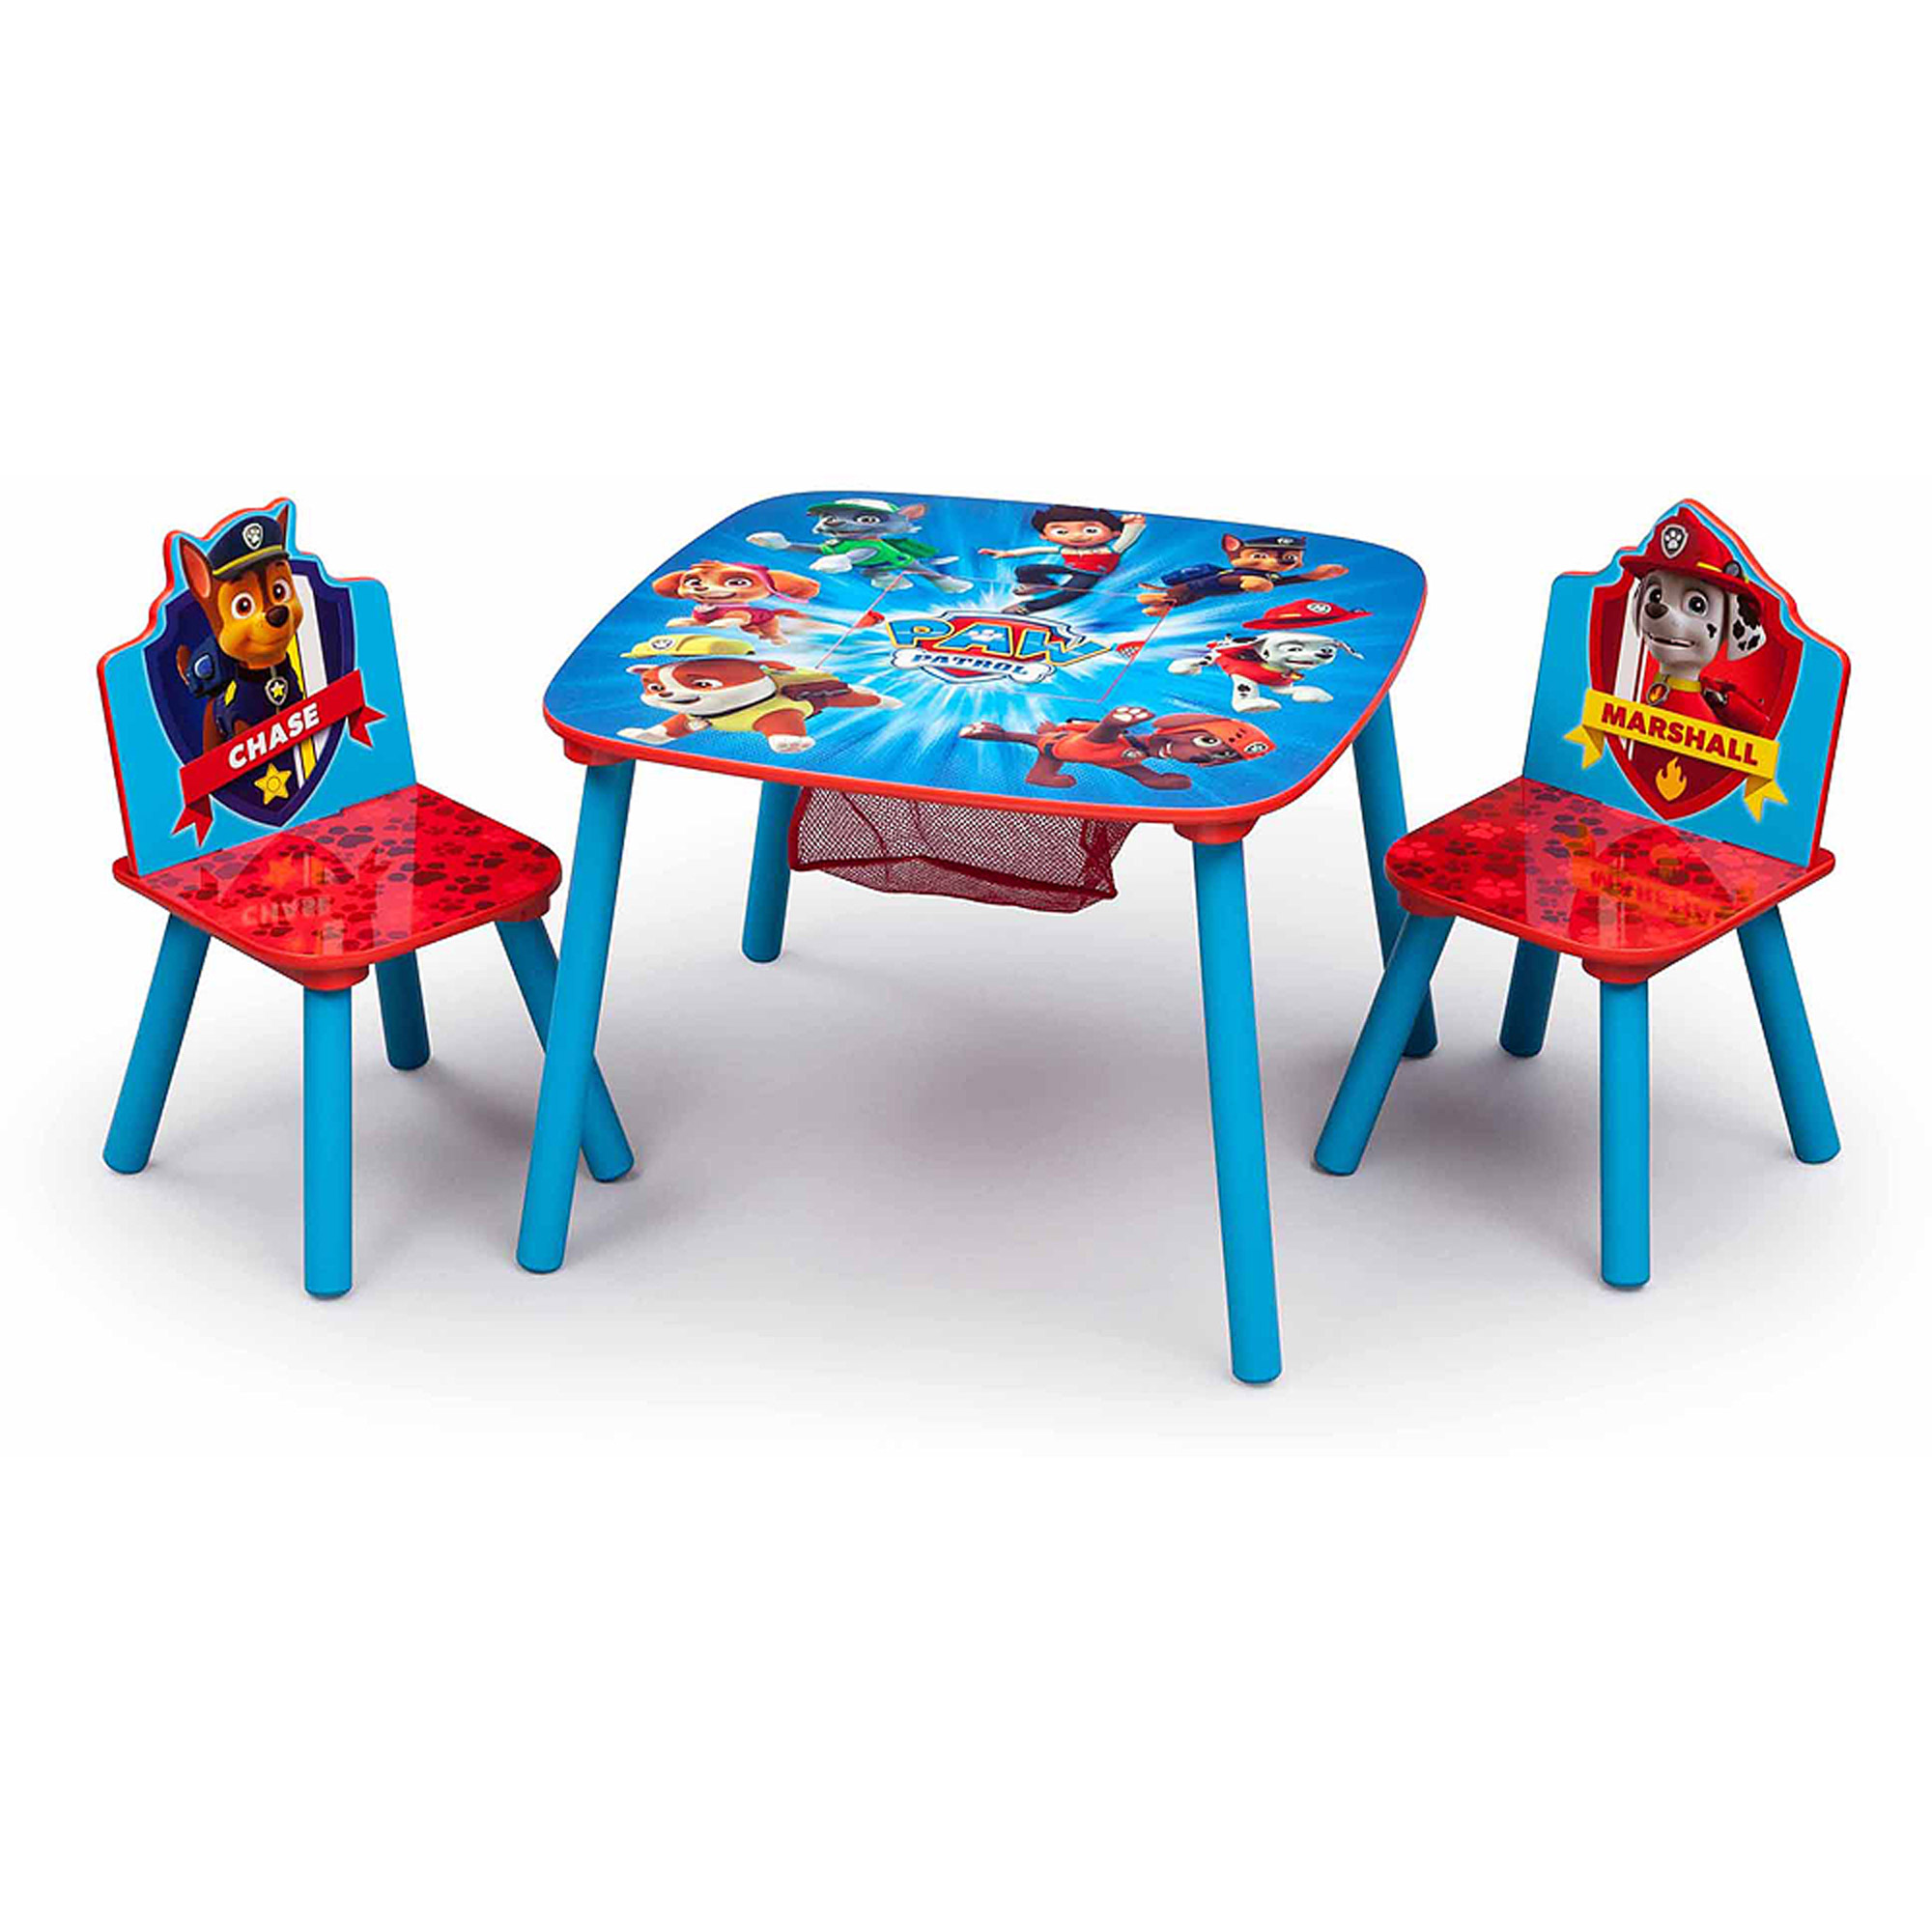 Nickelodeon Dora the Explorer Storage Table and Chairs Set   Walmart com. Nickelodeon Dora the Explorer Storage Table and Chairs Set